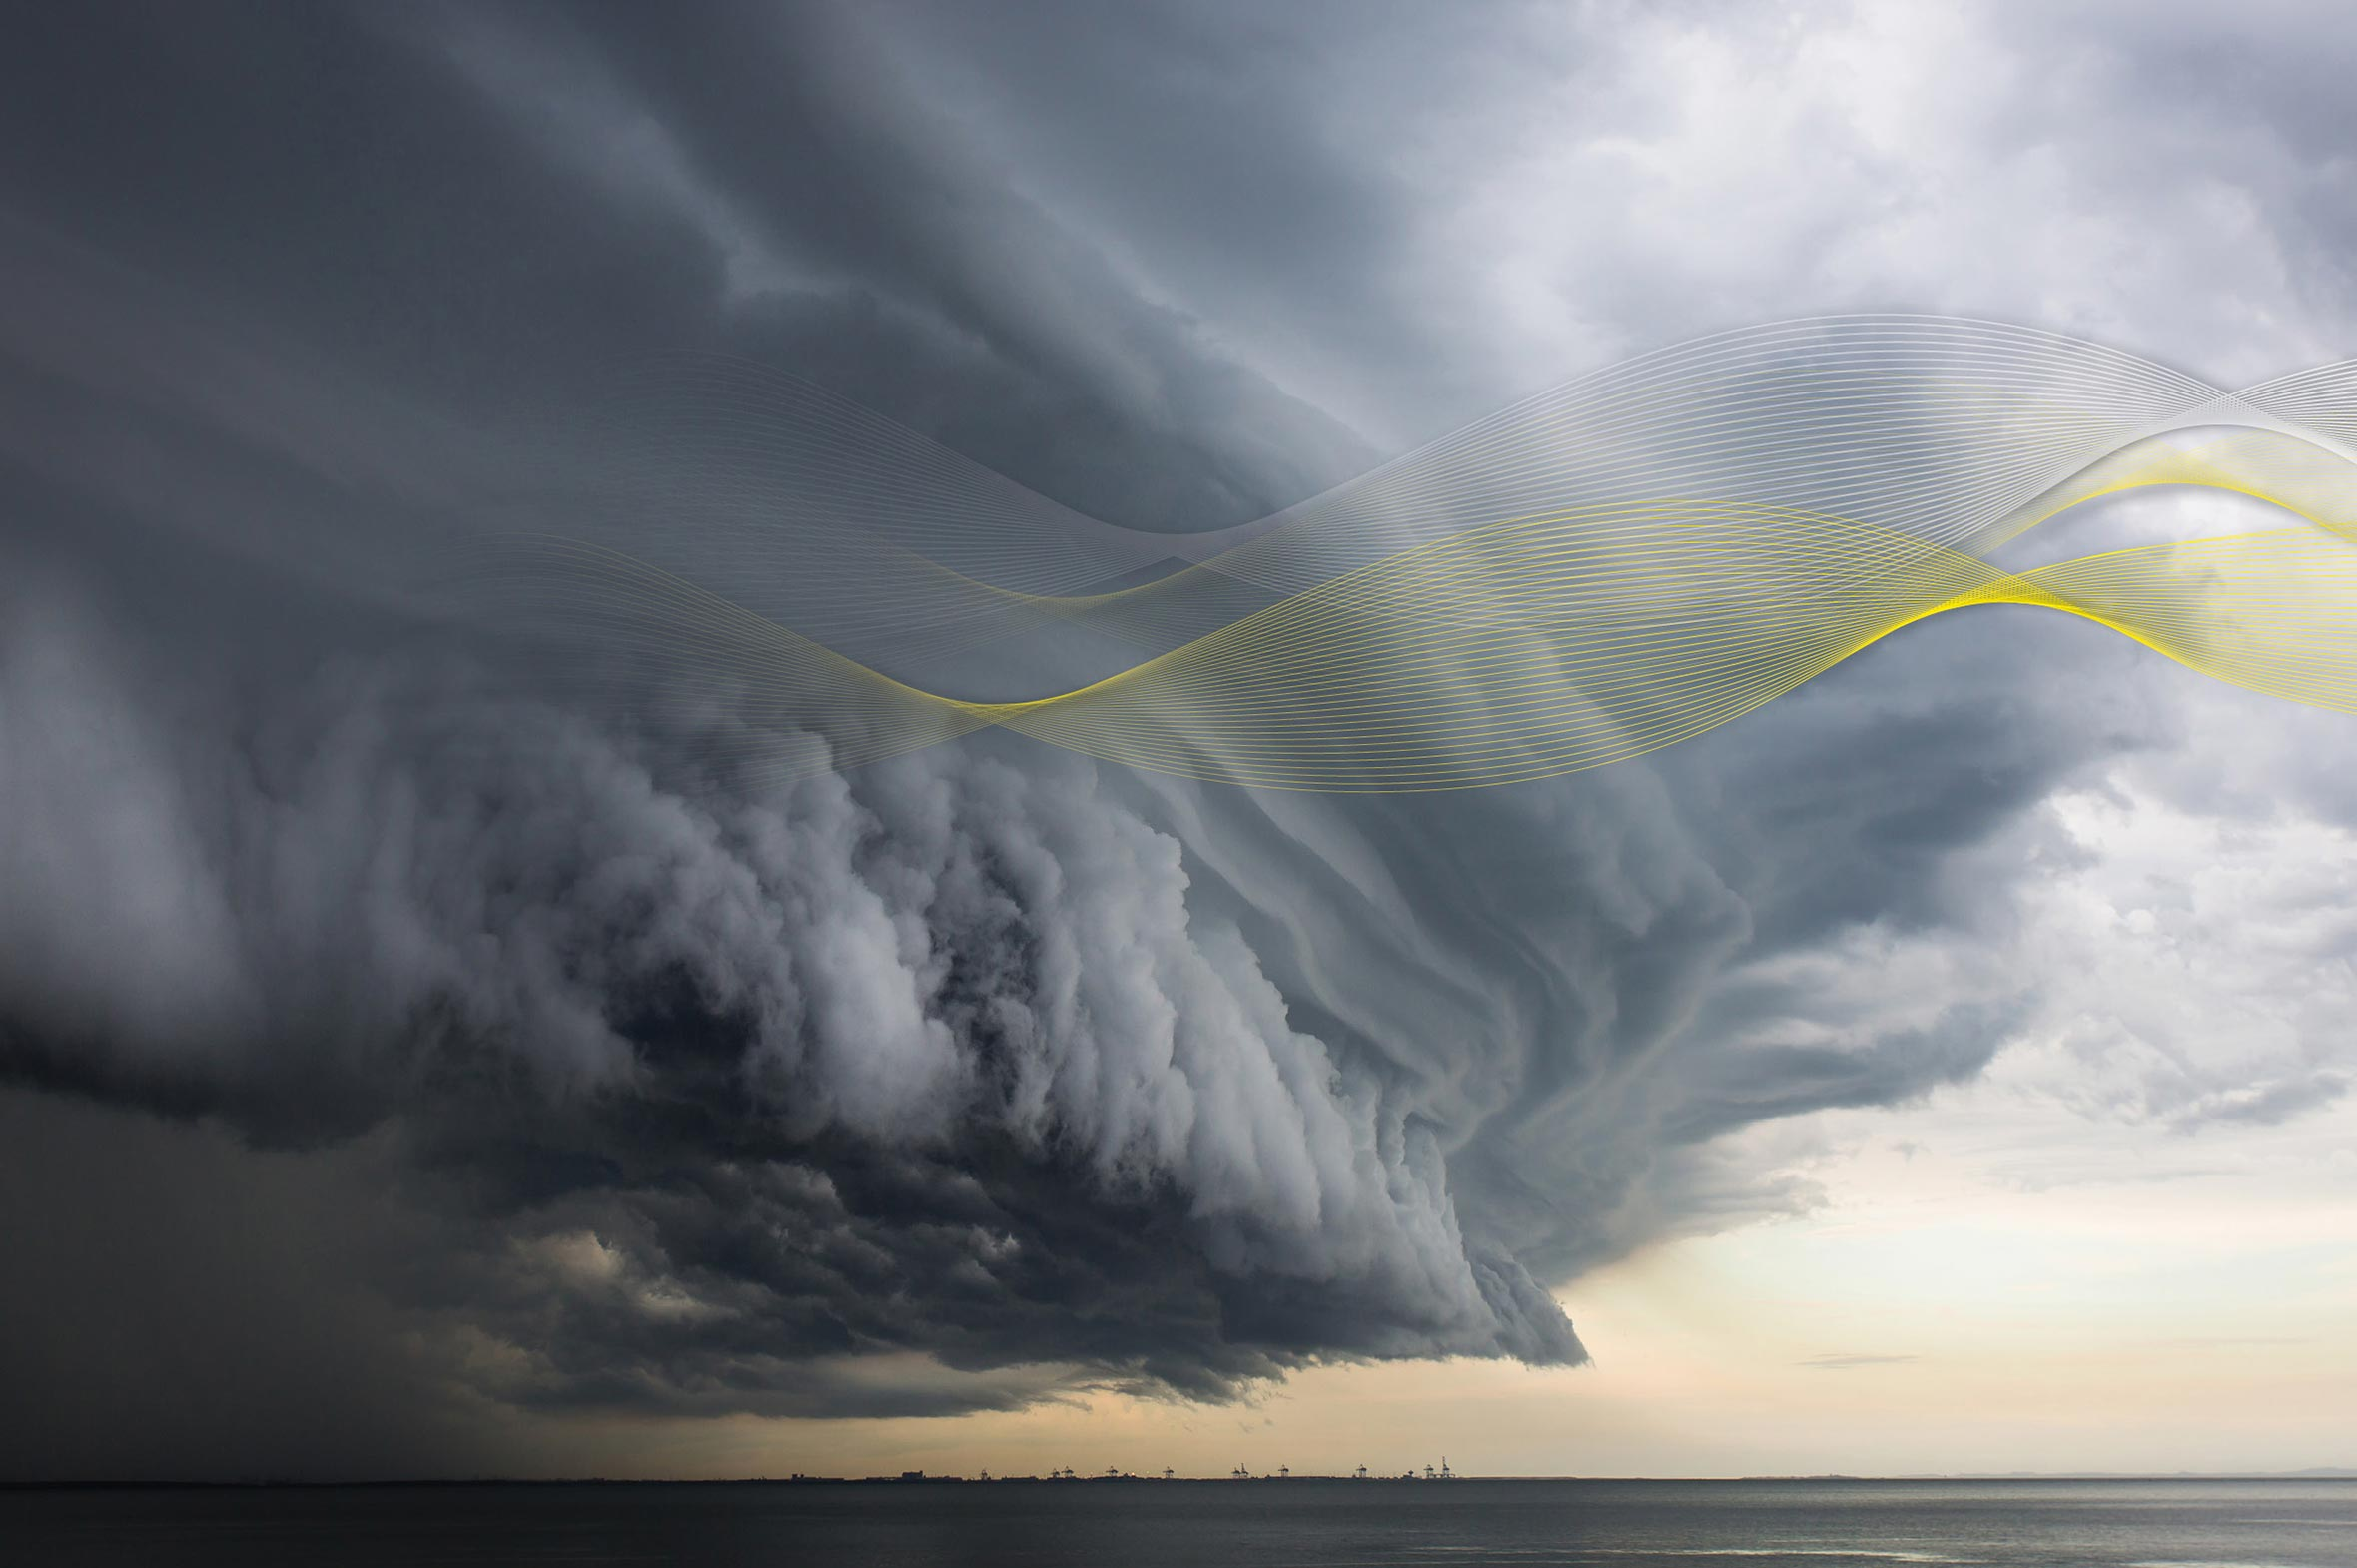 Storm clouds over the horizon